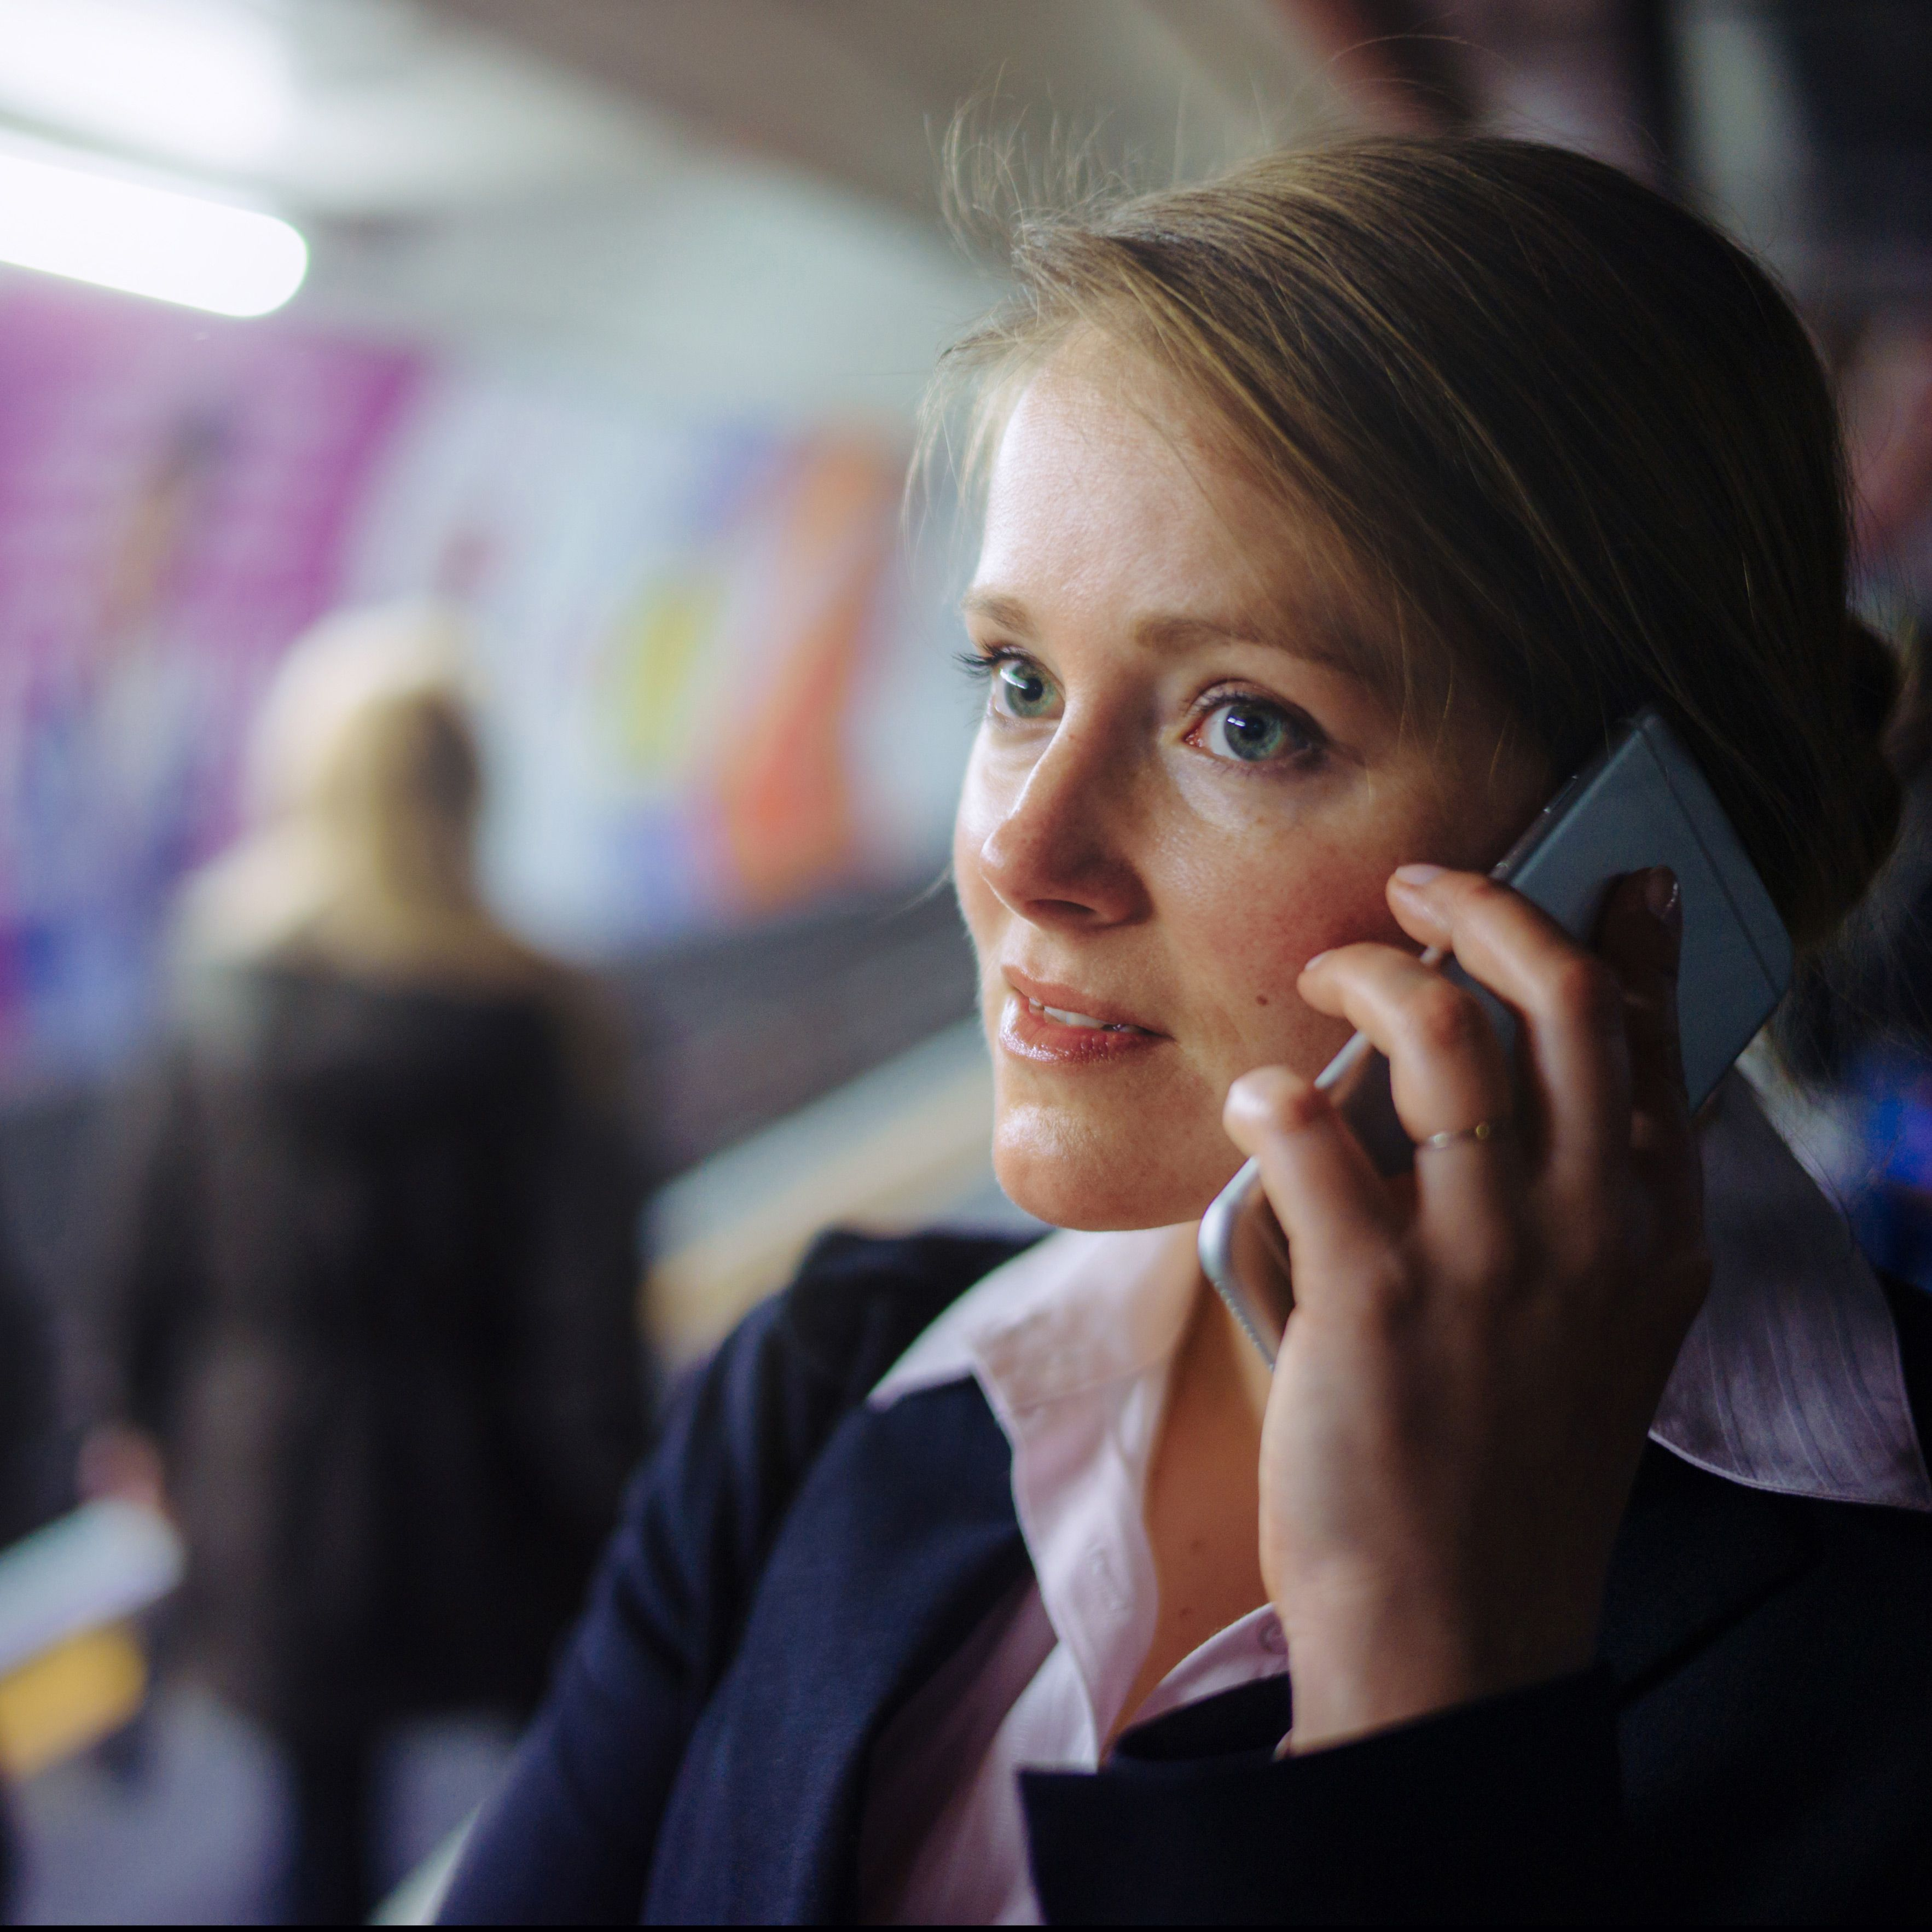 How to make calls without a mobile signal: Wi-Fi Calling